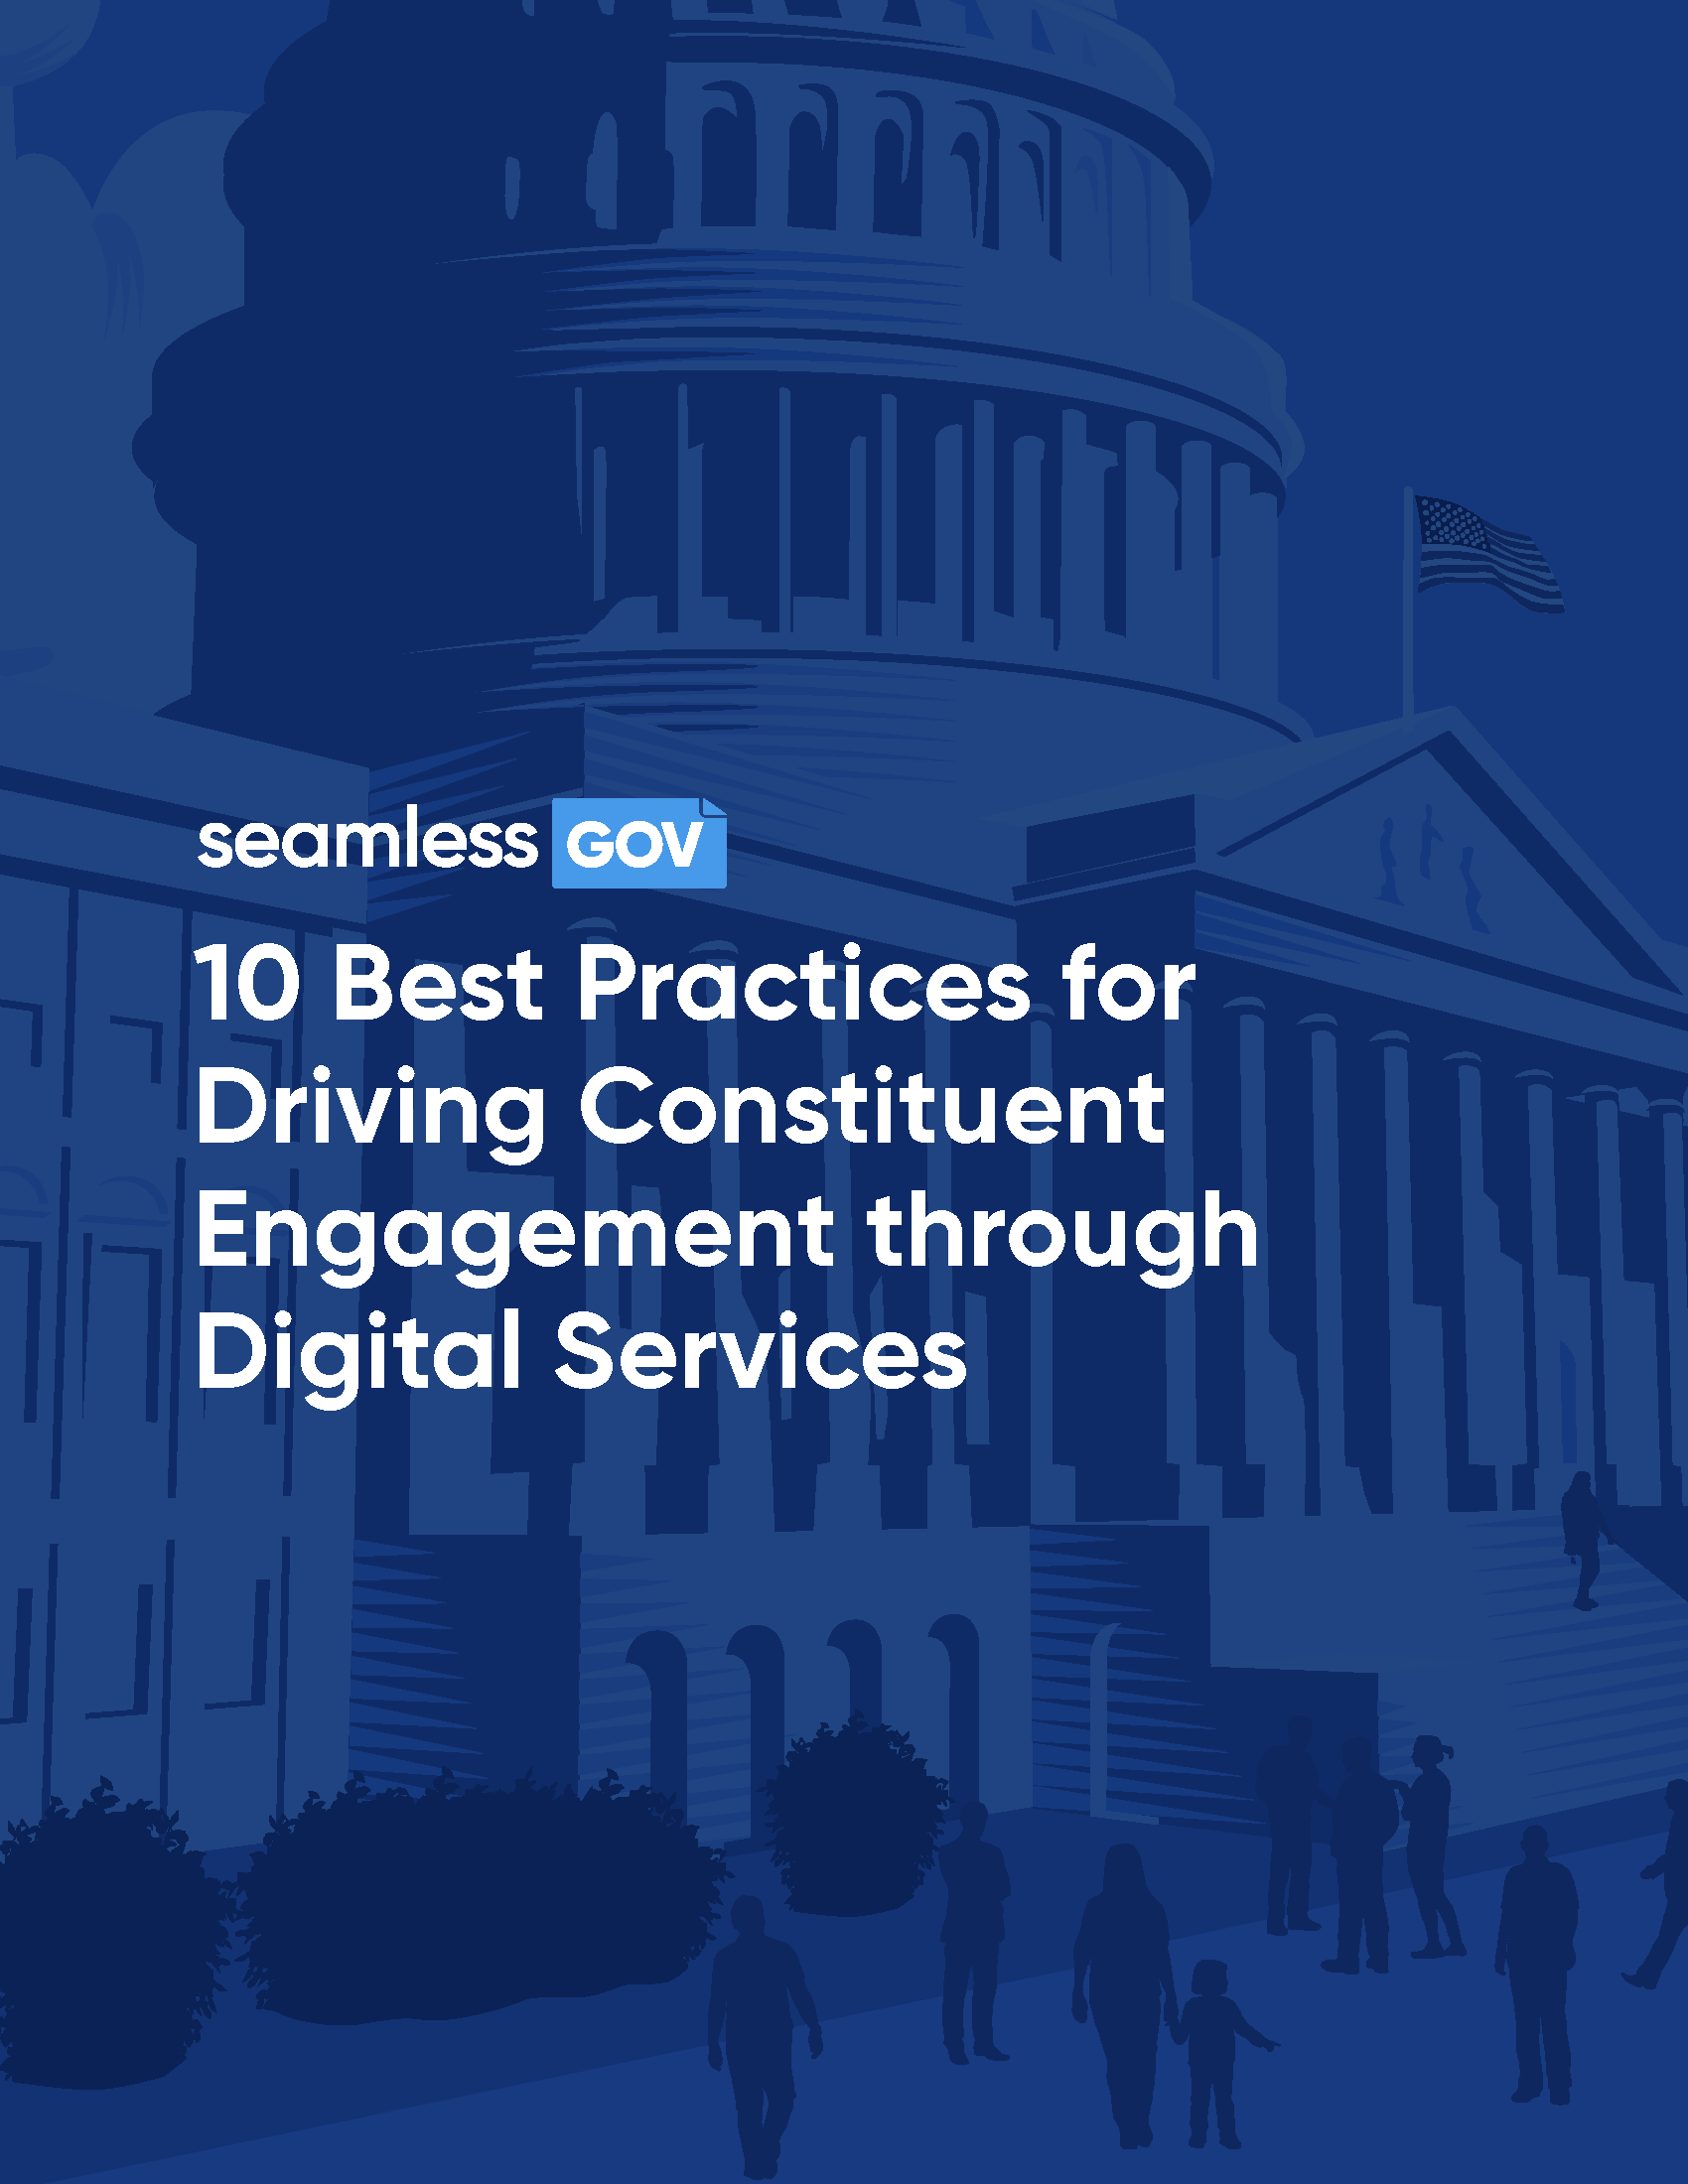 10 Best Practices for Driving Constituent Engagement through Digital Services